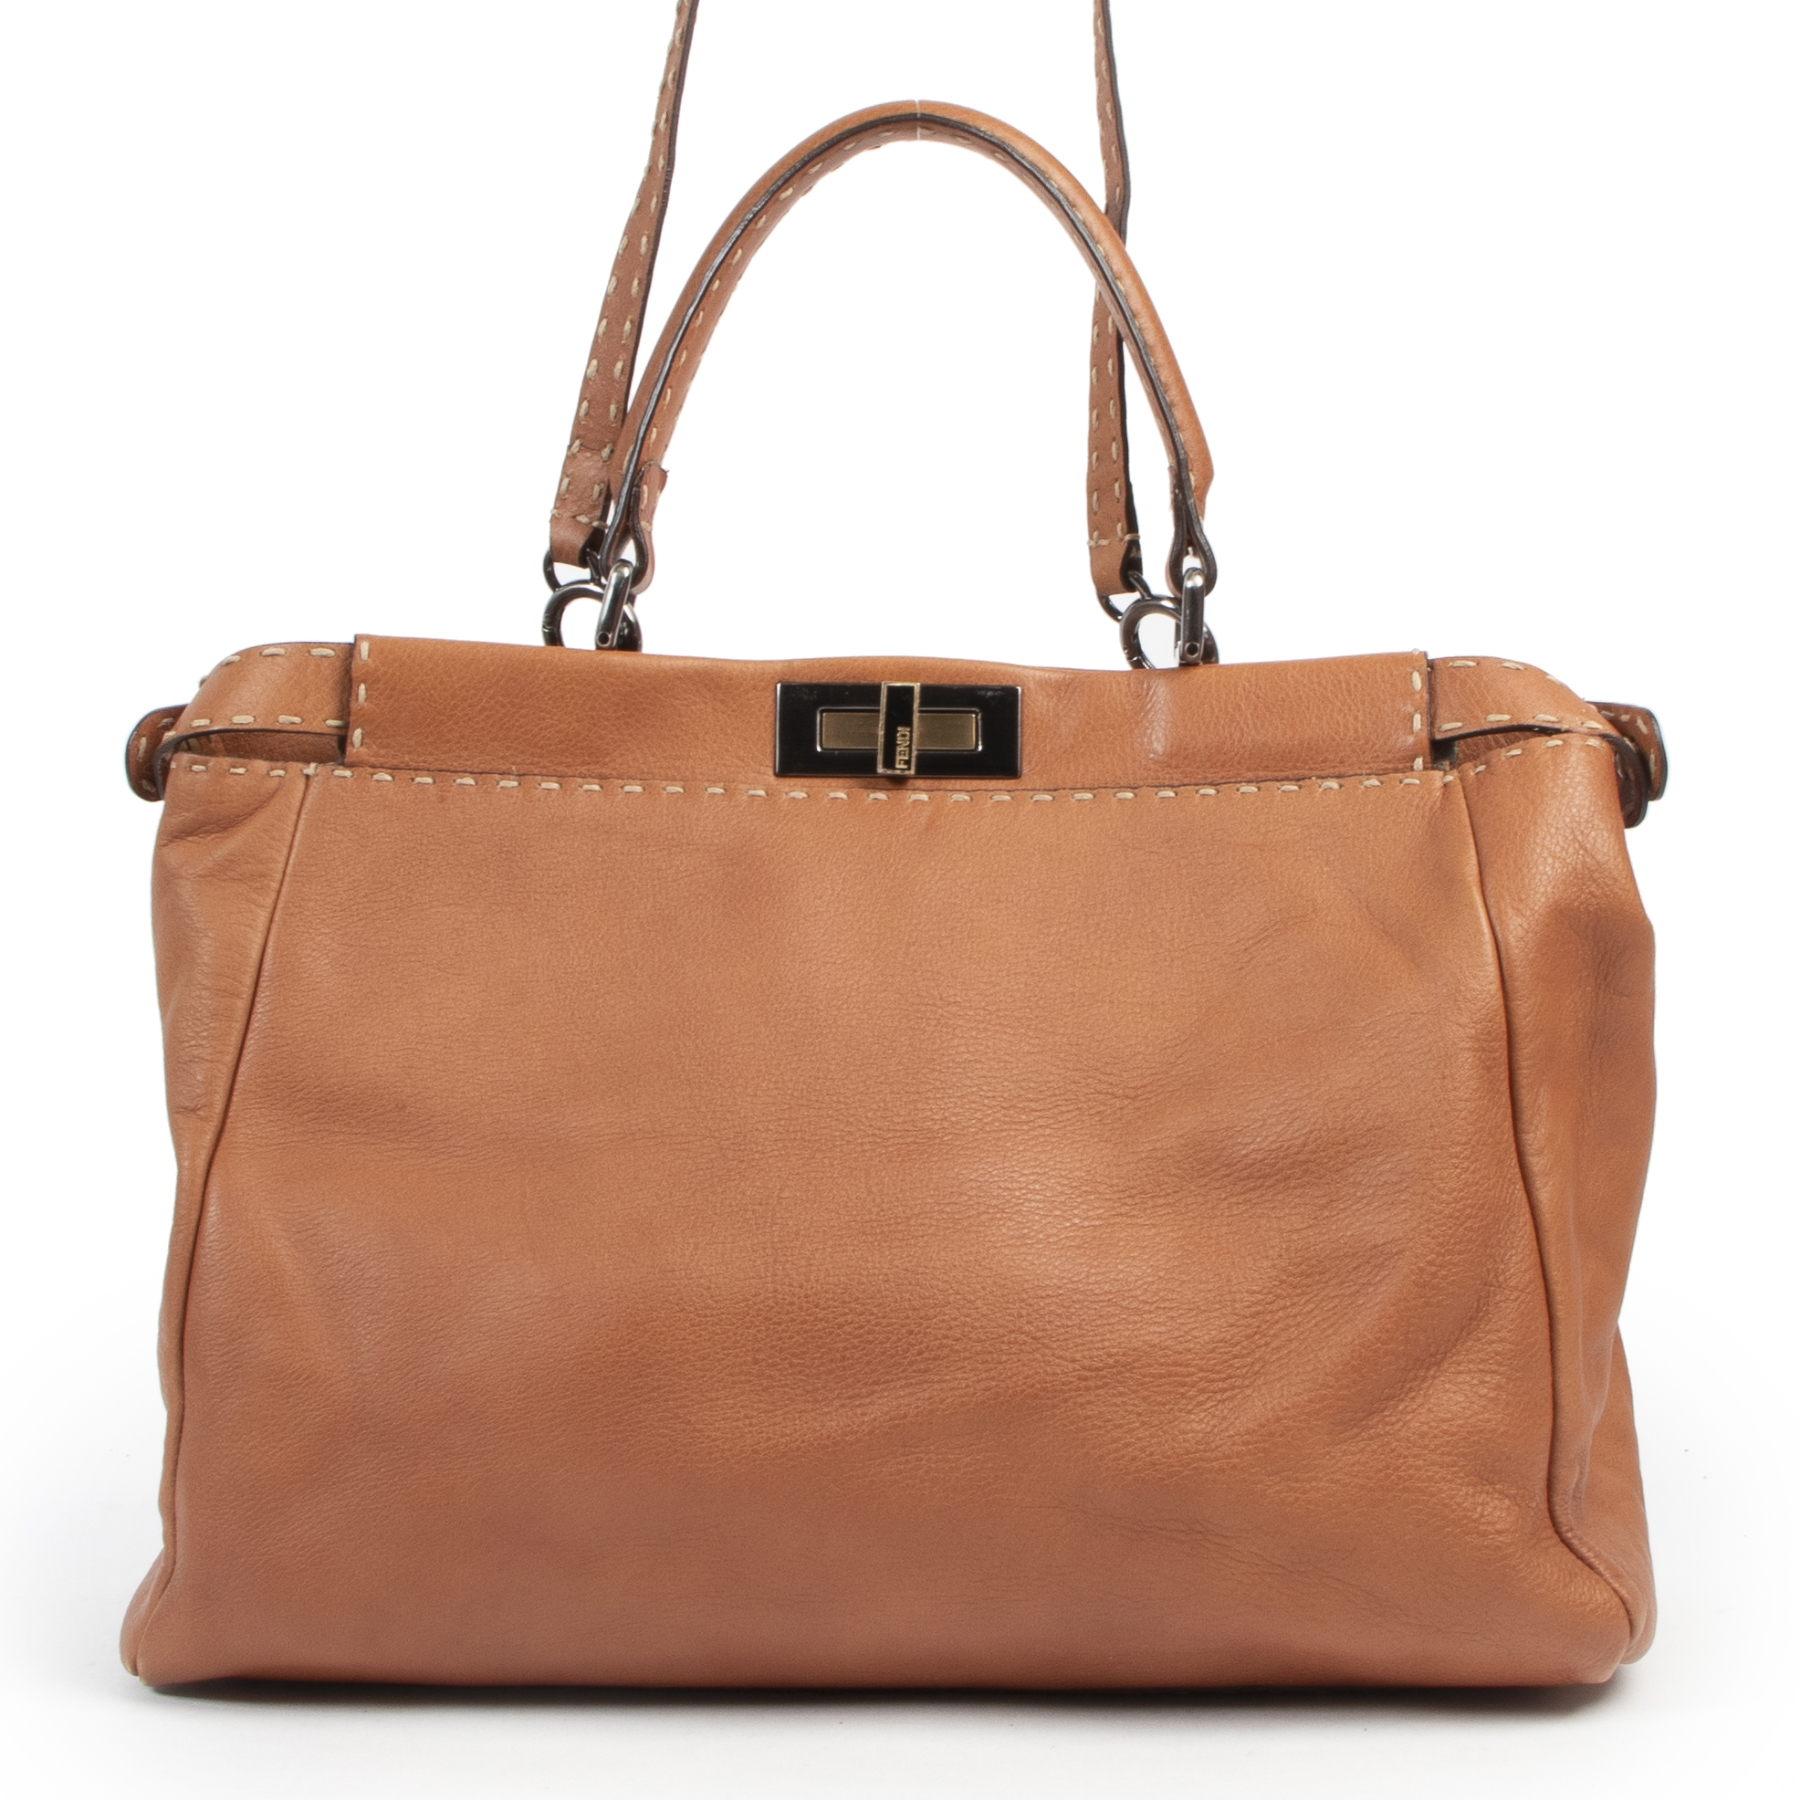 Are you looking for an authentic designer Fendi Cognac Leather Peekaboo